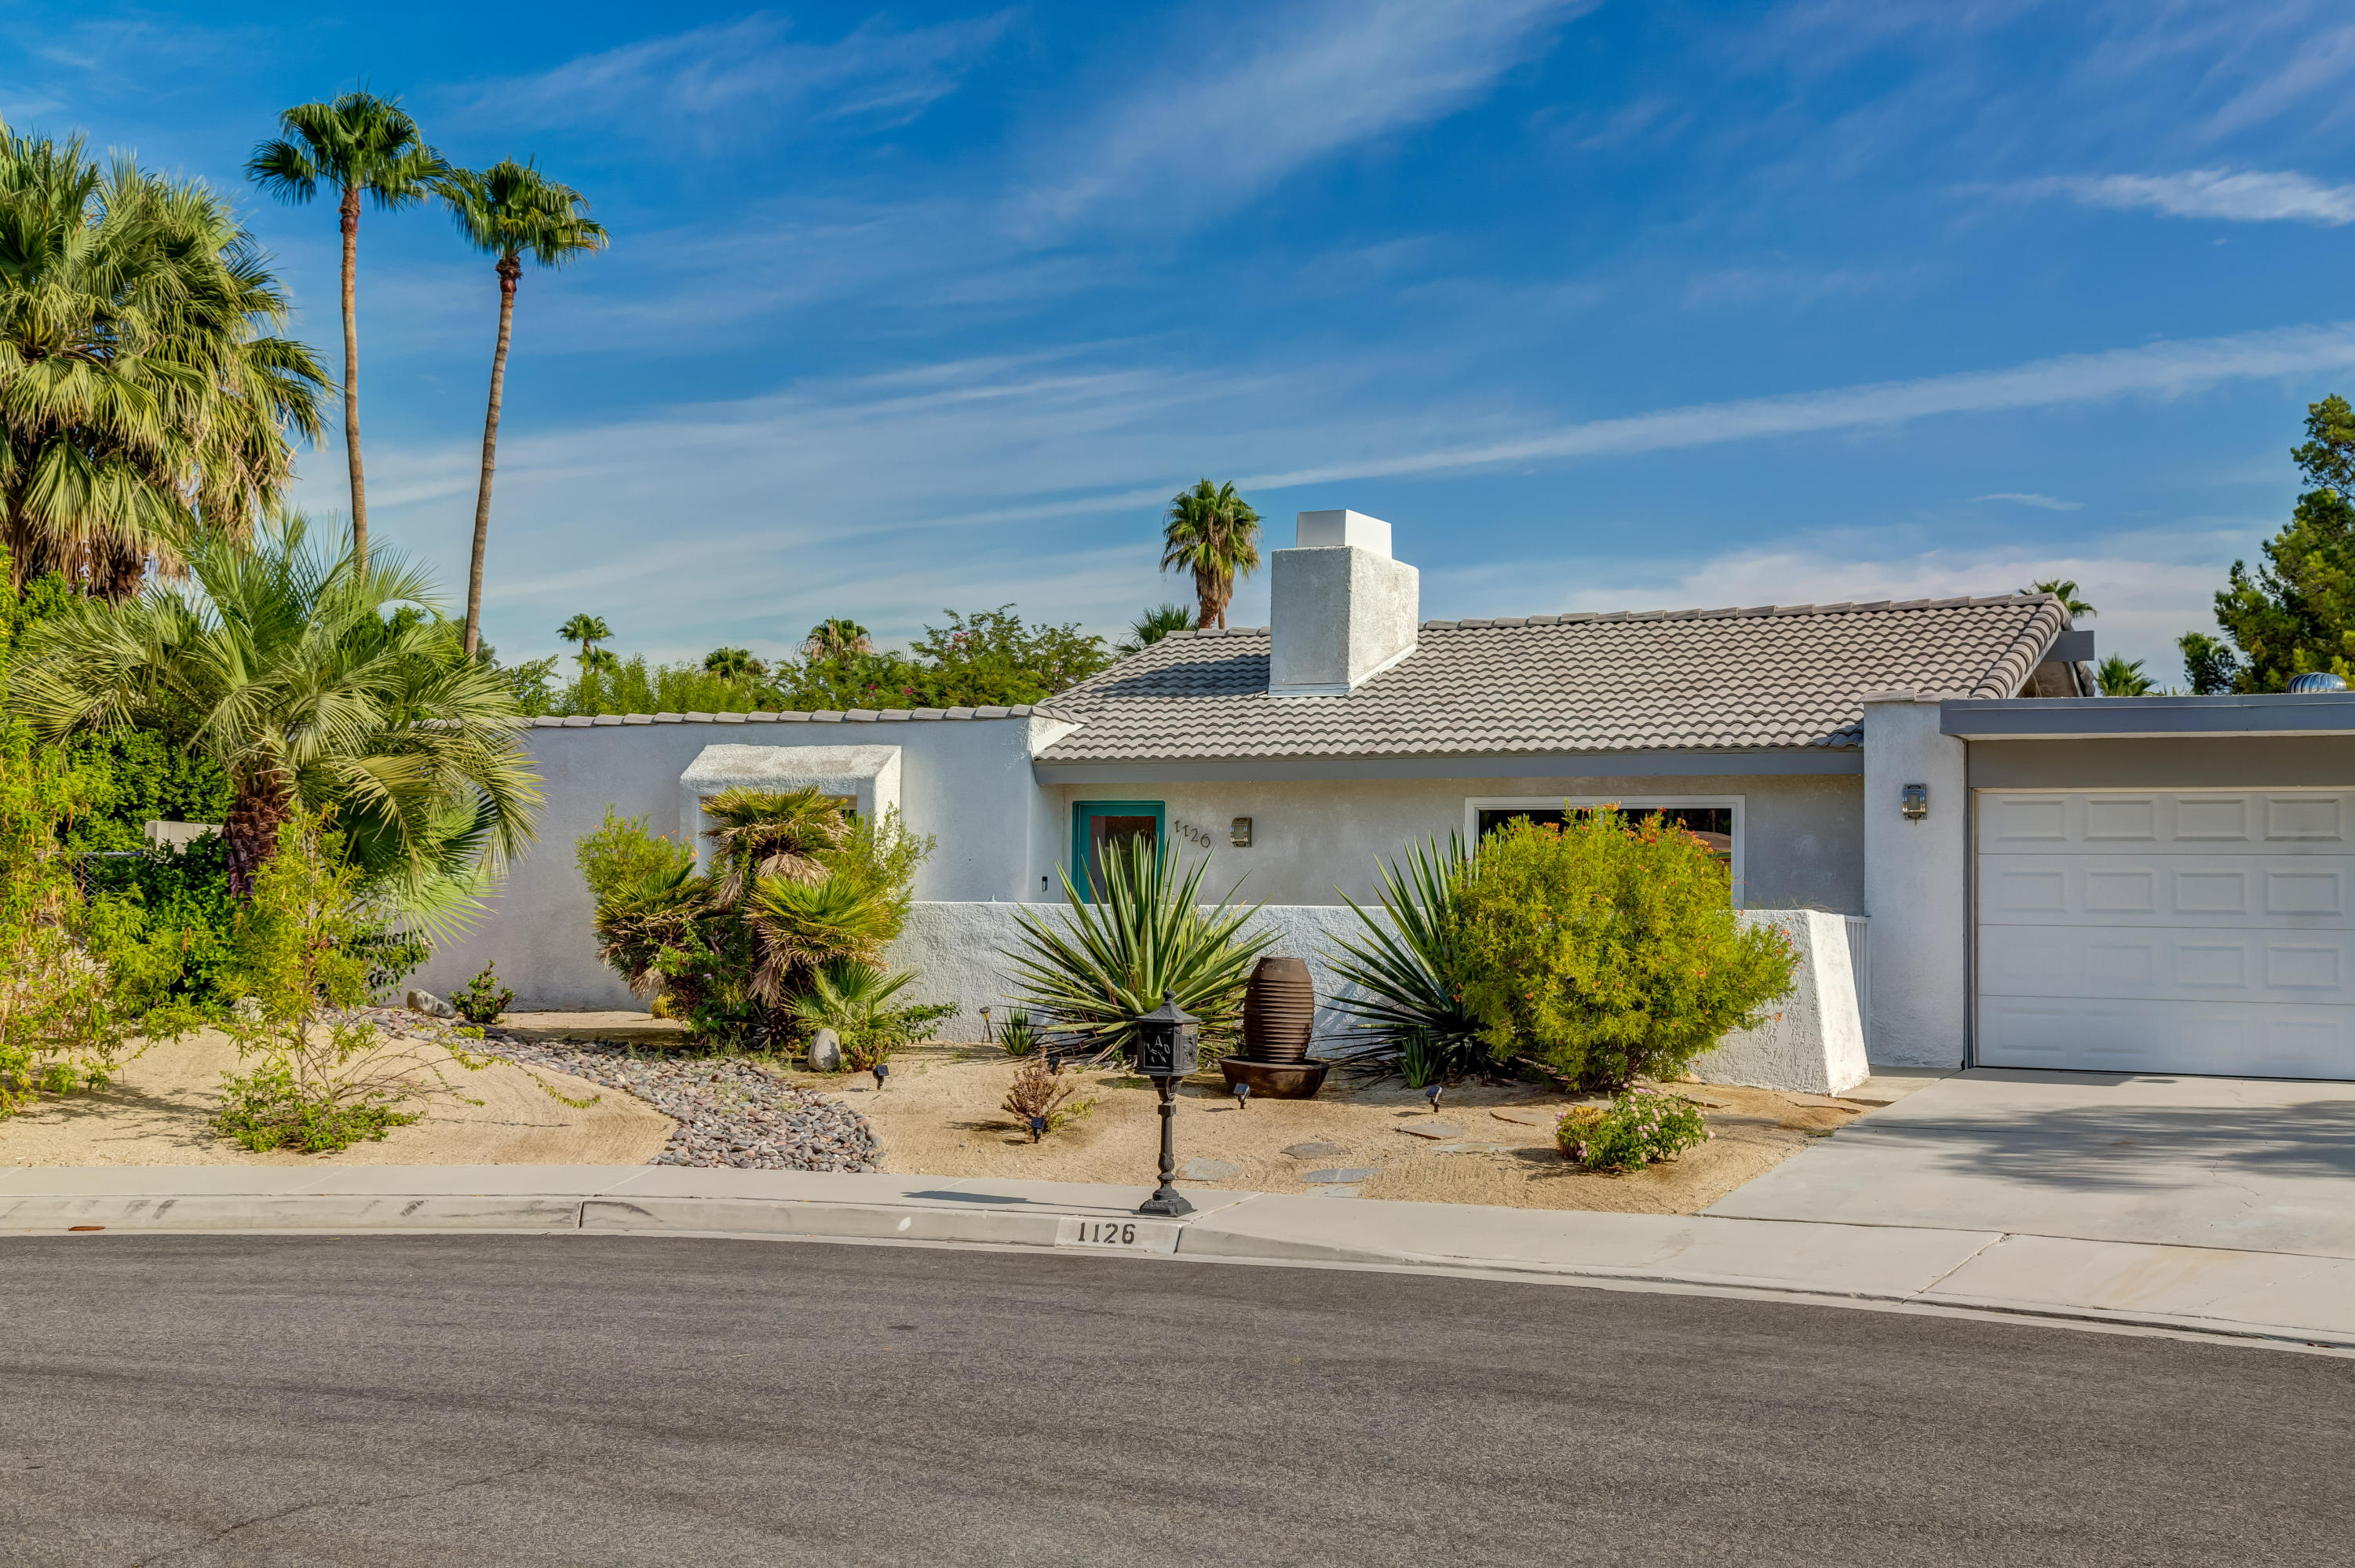 1126 E El Cid, Palm Springs, California 92262, 3 Bedrooms Bedrooms, ,2 BathroomsBathrooms,Residential,Sold,1126 E El Cid,19506100